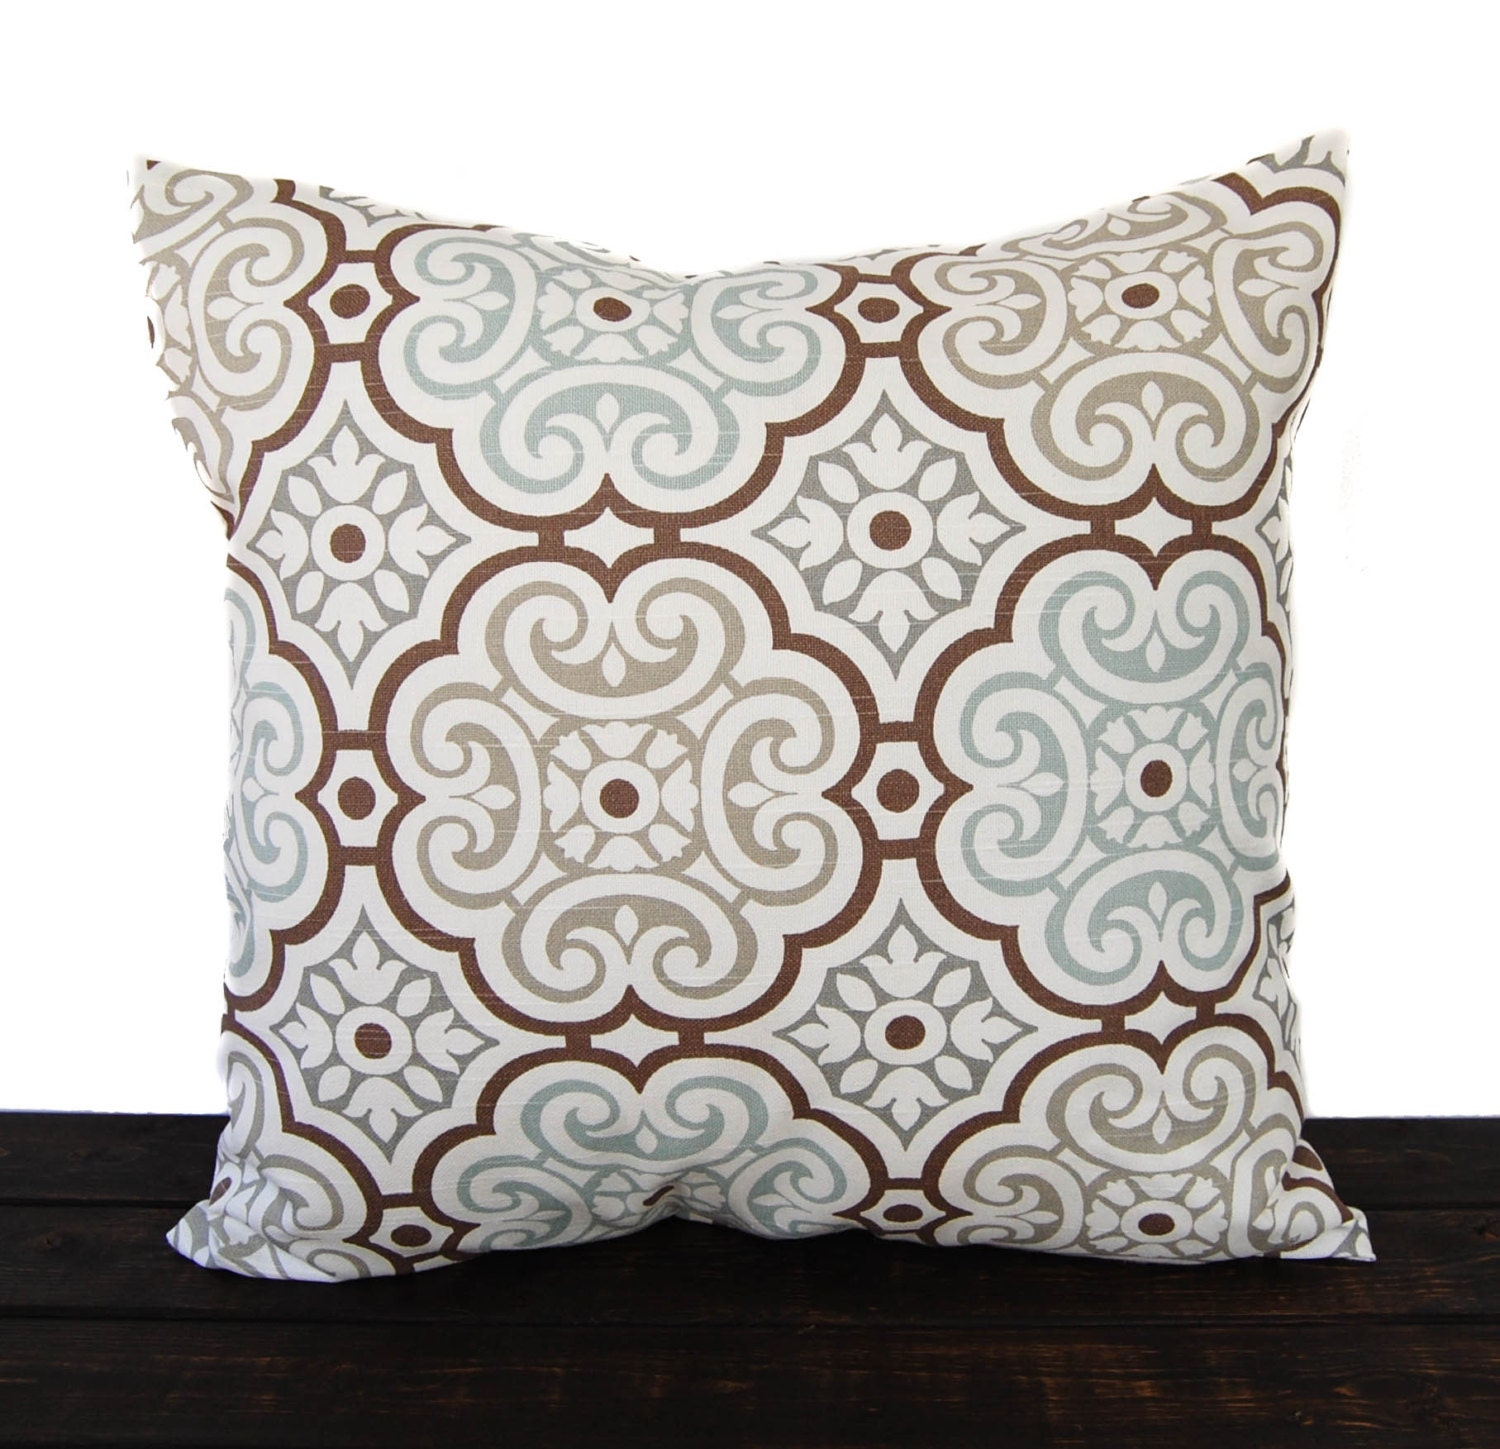 Light Brown Decorative Pillows : Throw pillow cover cushion cover gray brown light blue brown